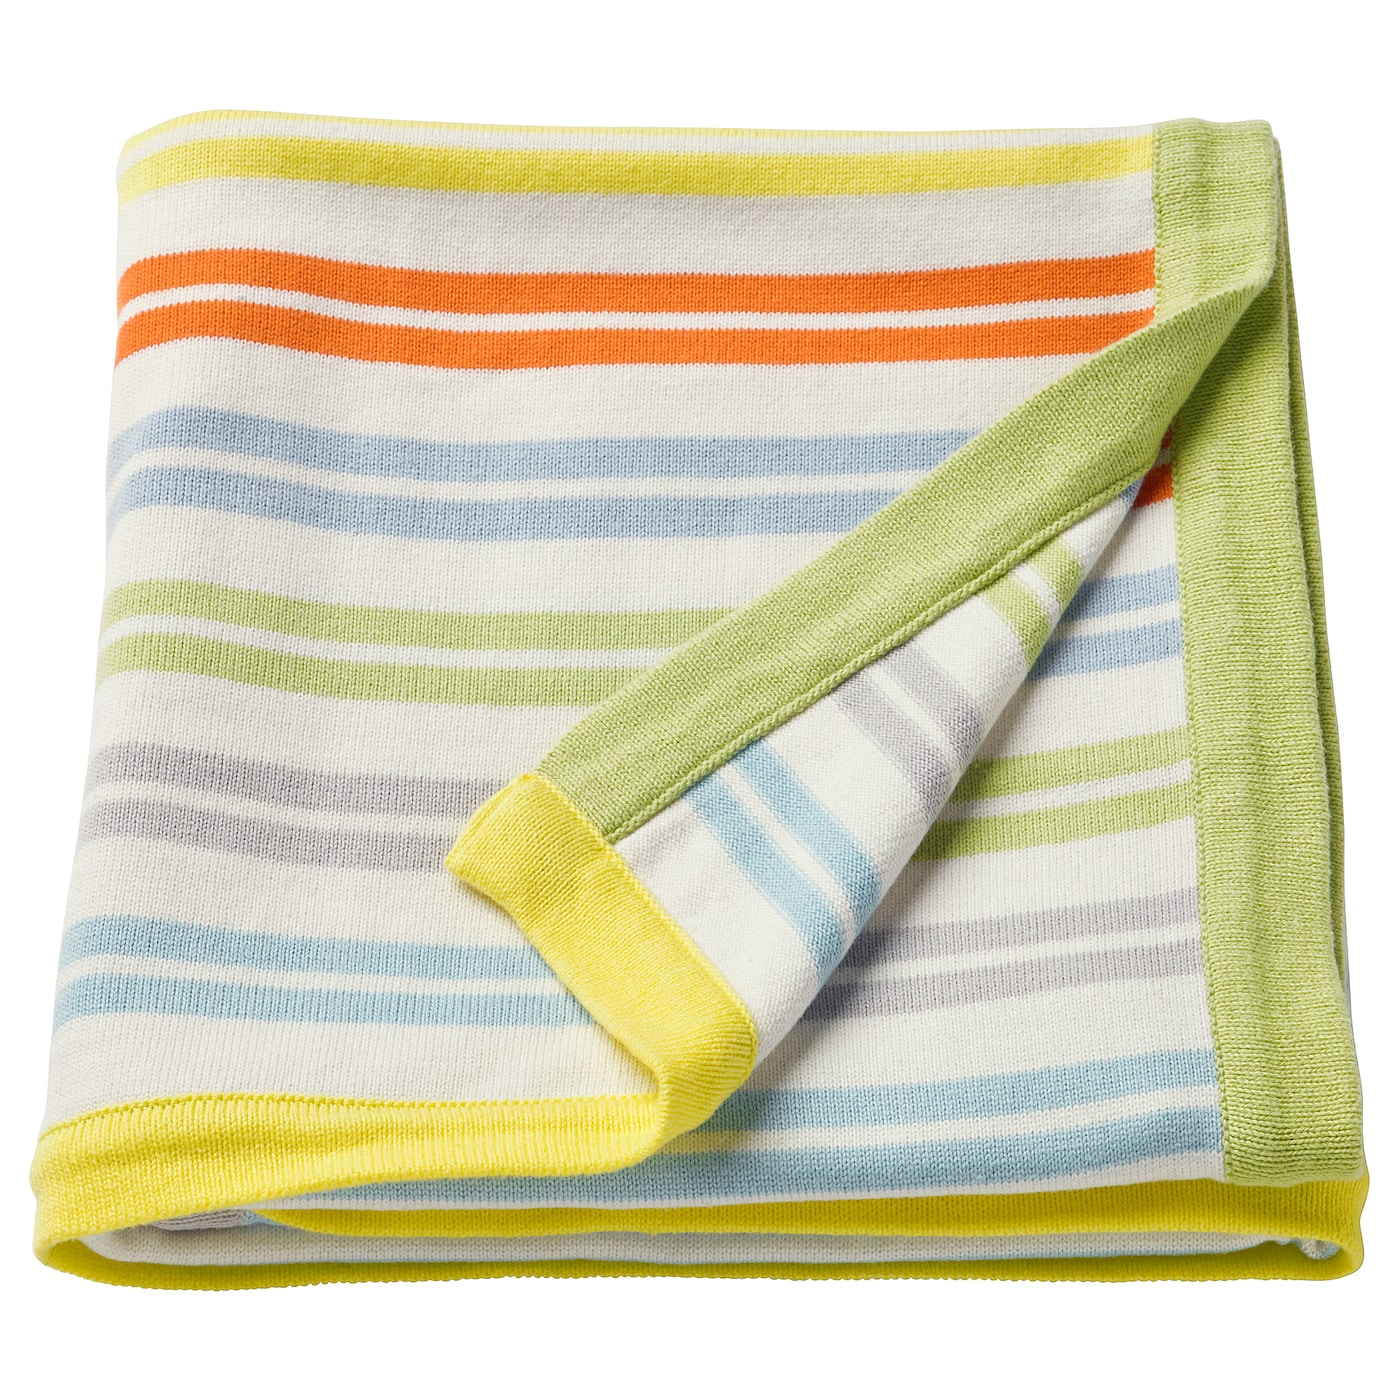 IKEA DRÖMLAND blanket The yarn-dyed fabric keeps both its shape and colour, wash after wash.